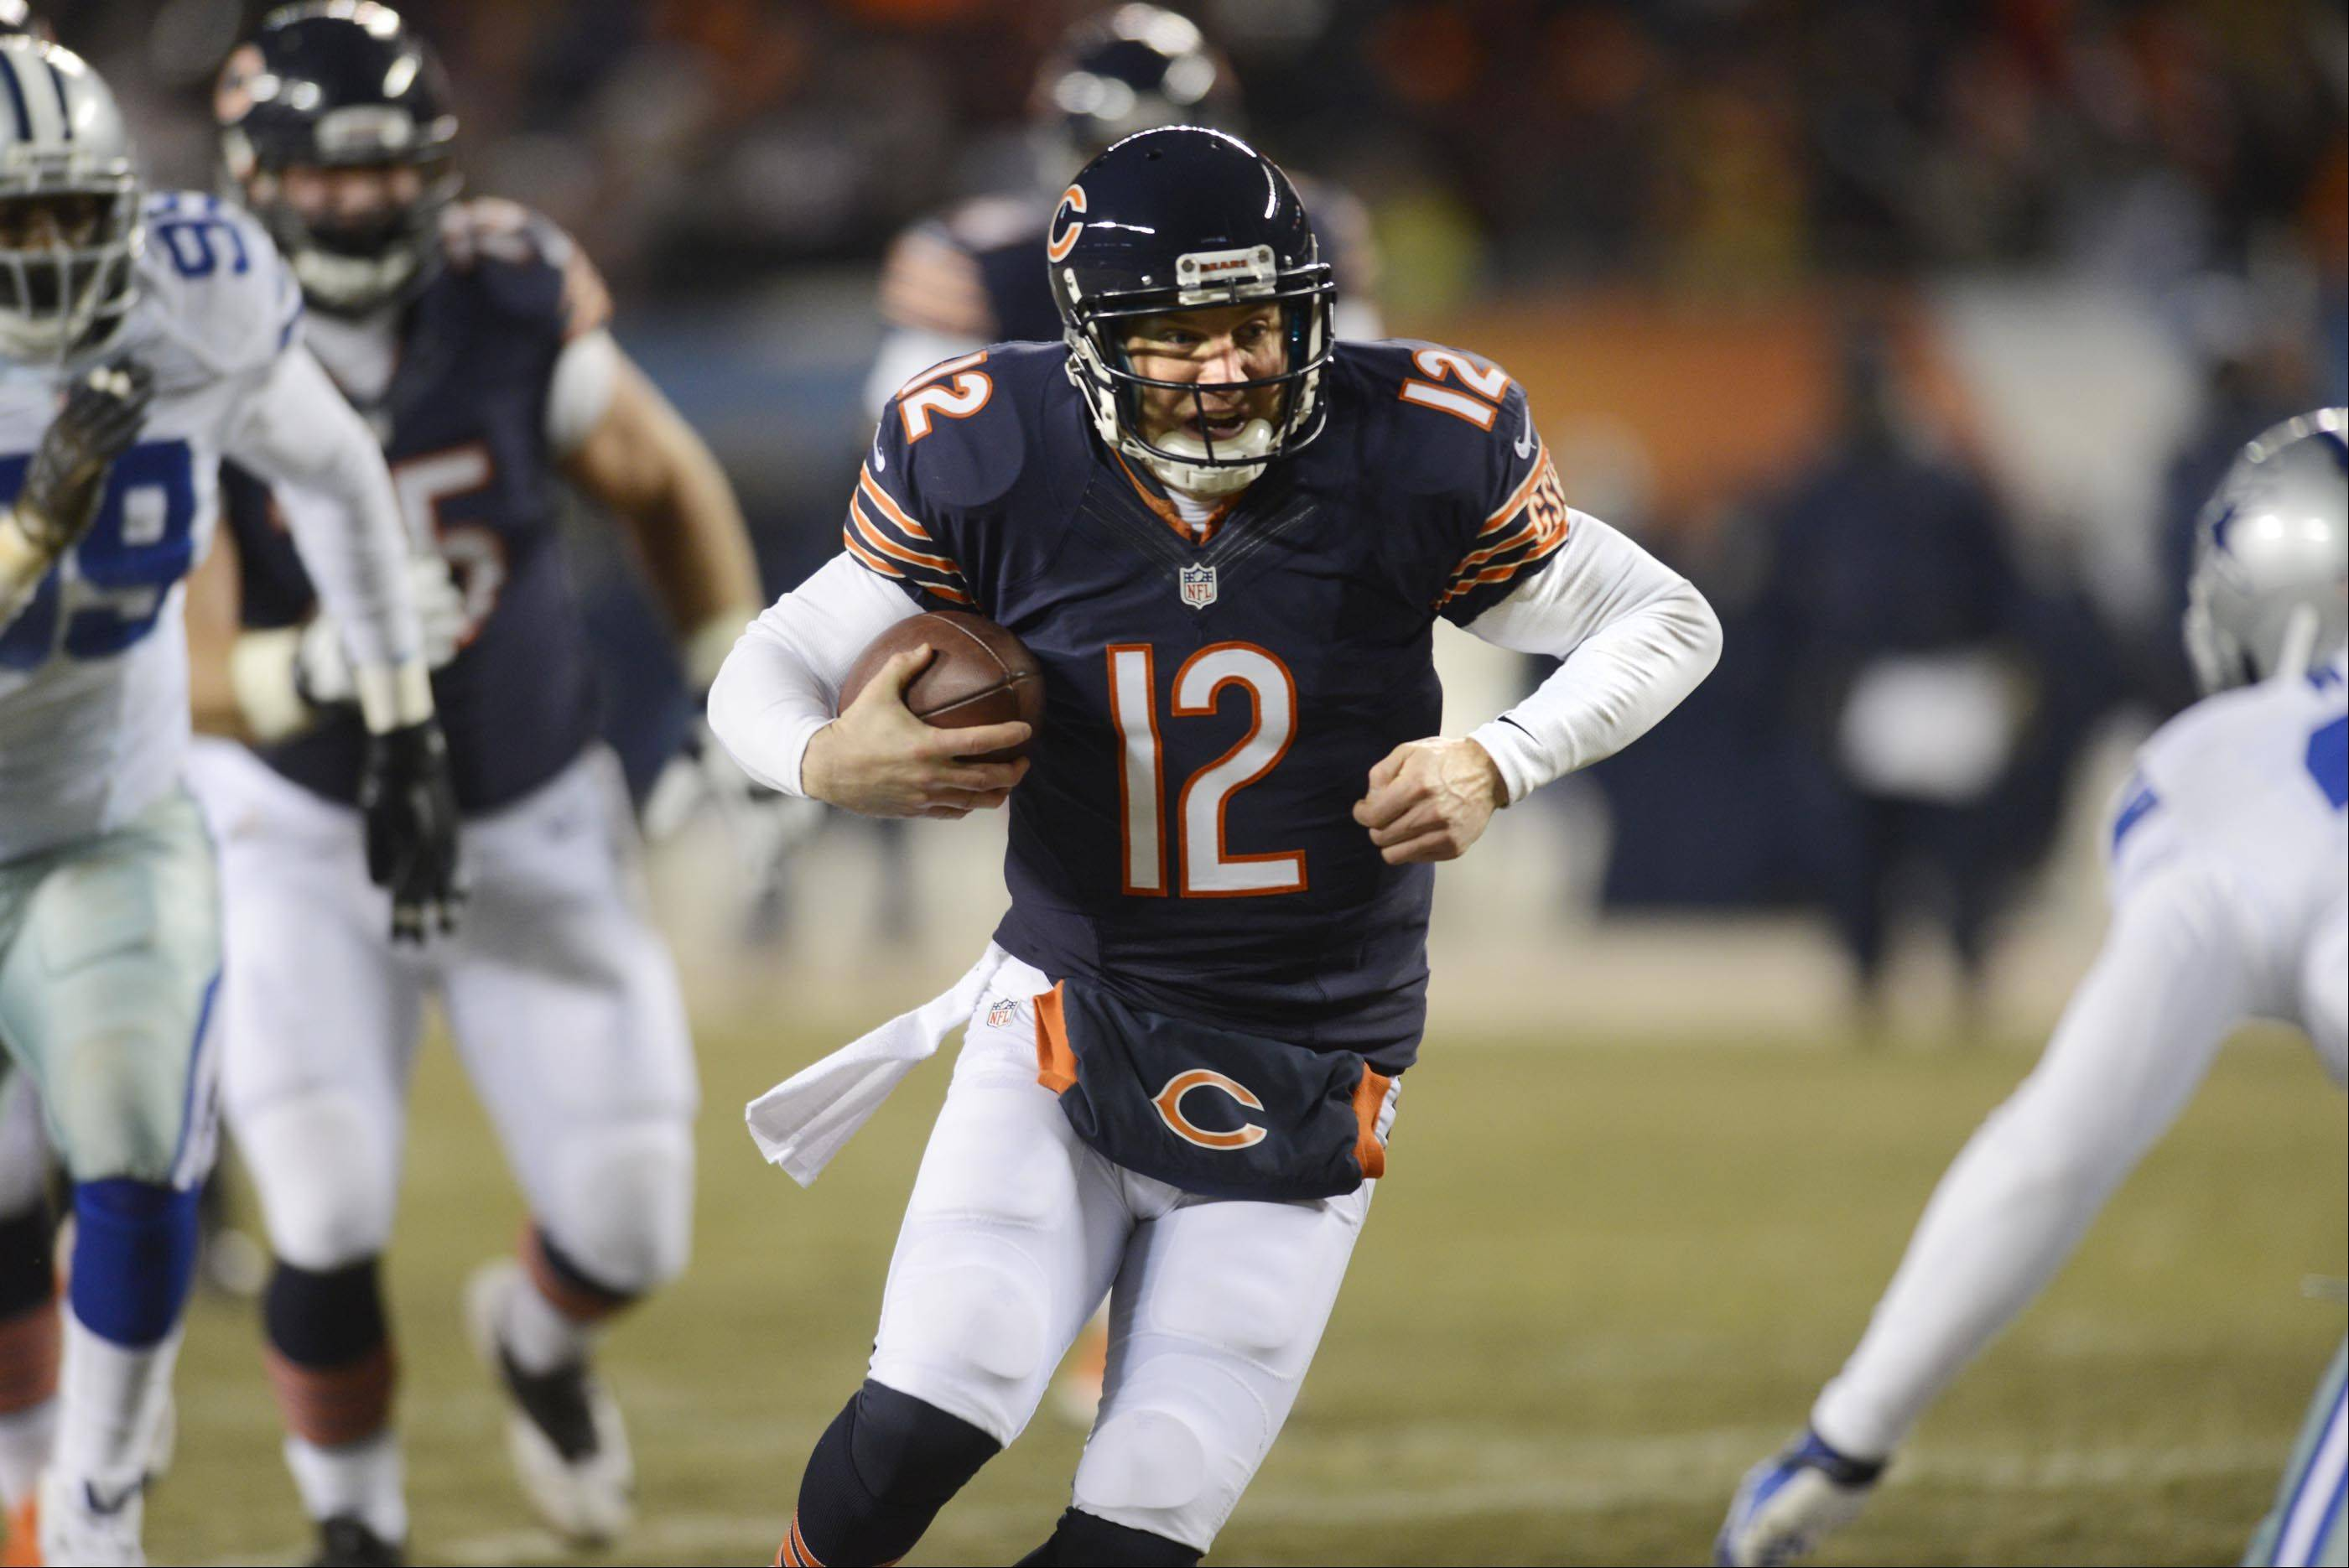 Chicago Bears quarterback Josh McCown runs for a touchdown in the second quarter.